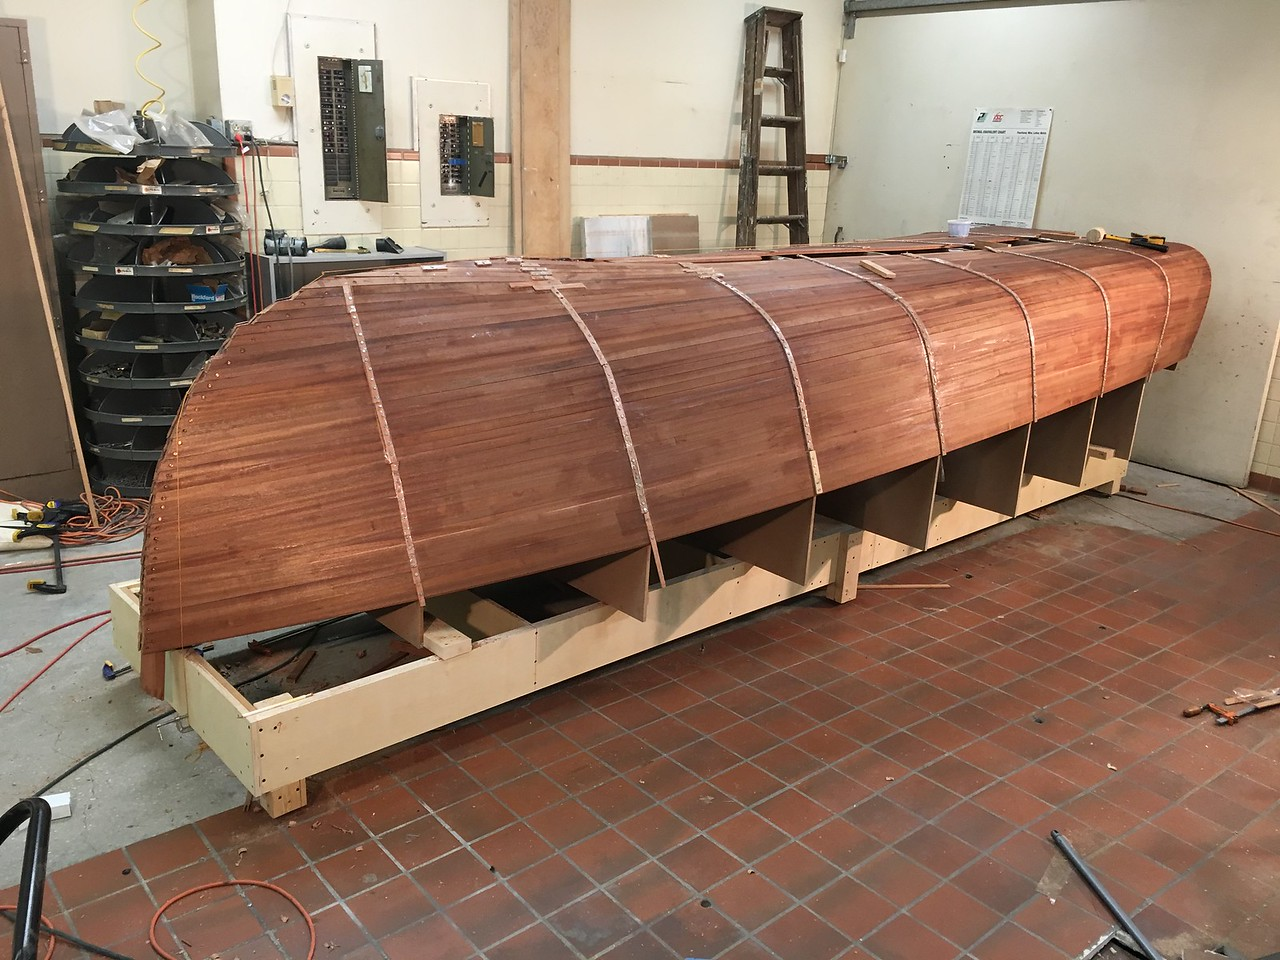 The Stern Strips are Cut